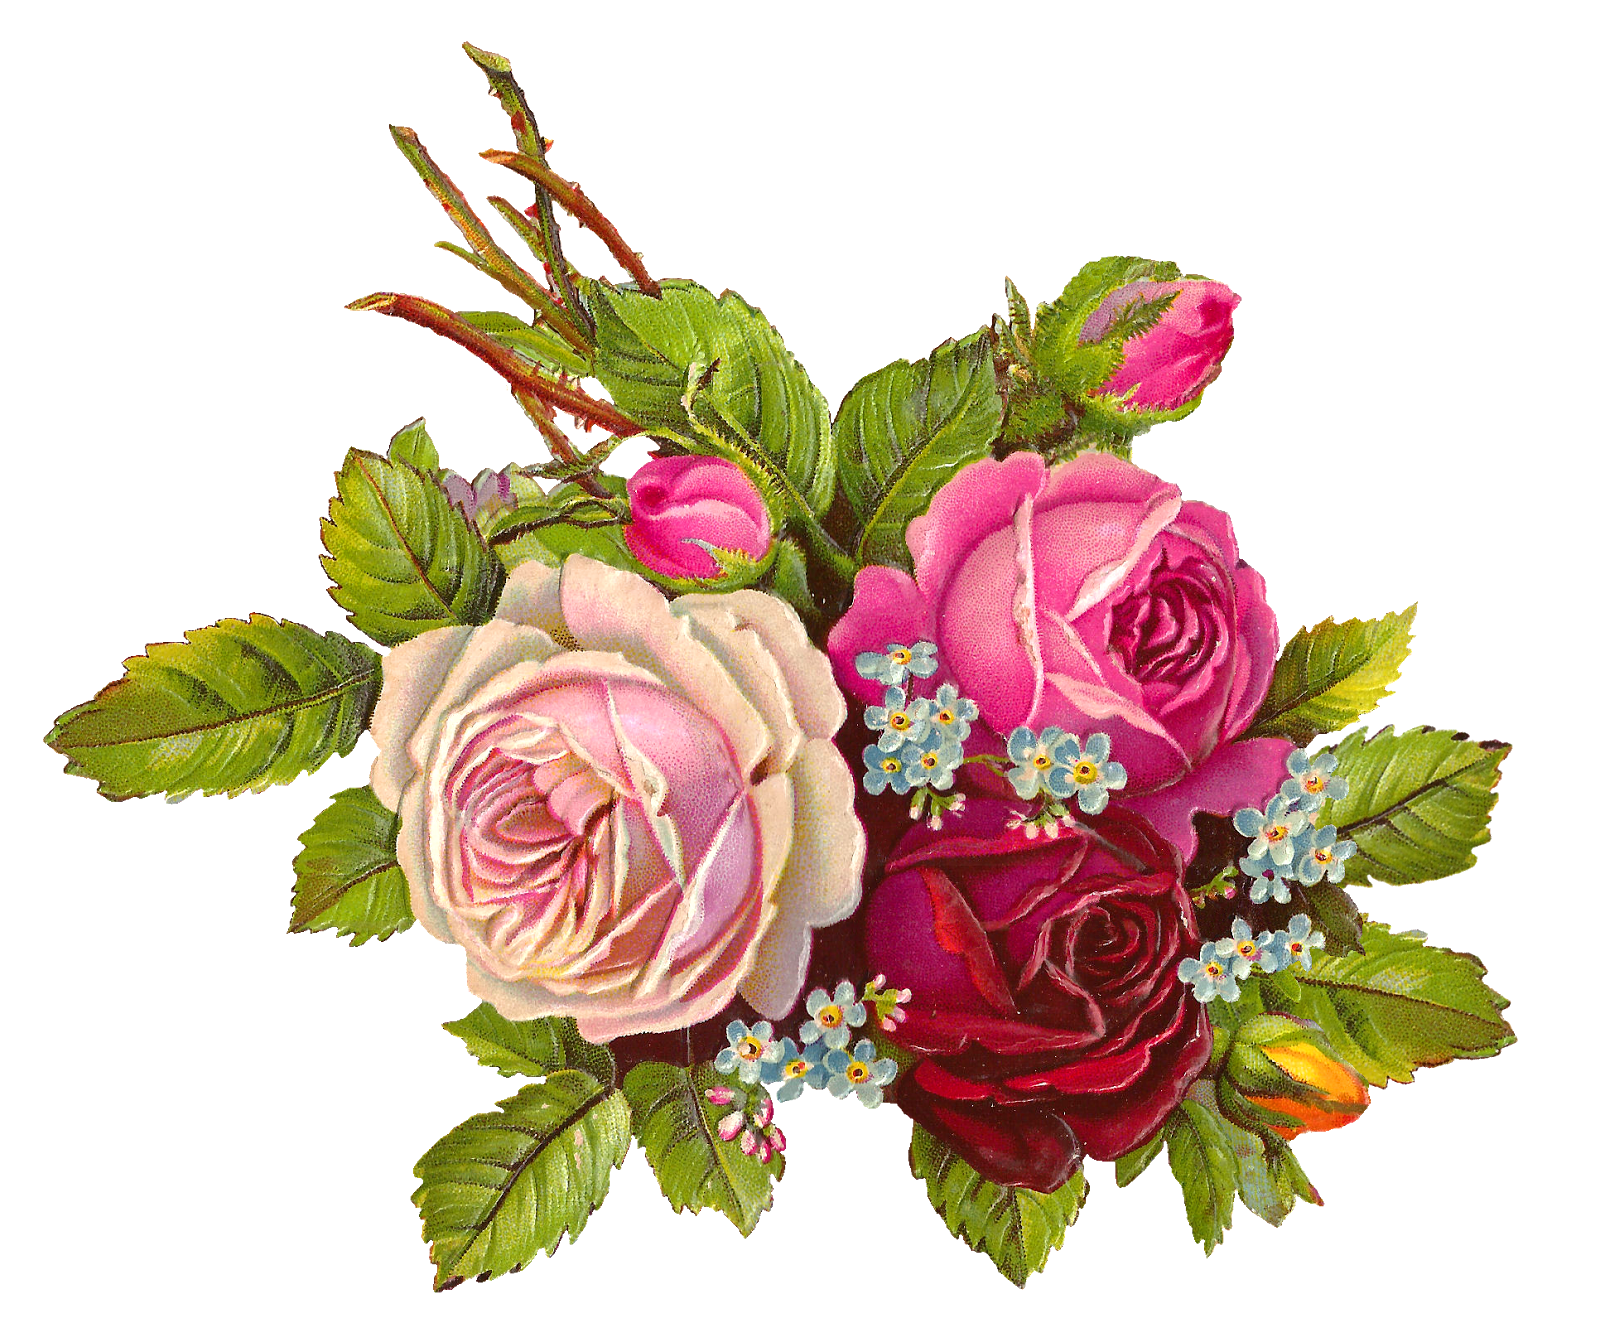 Gorgeous Free Digital Rose Download Of Three Big Roses Leaves And Stems